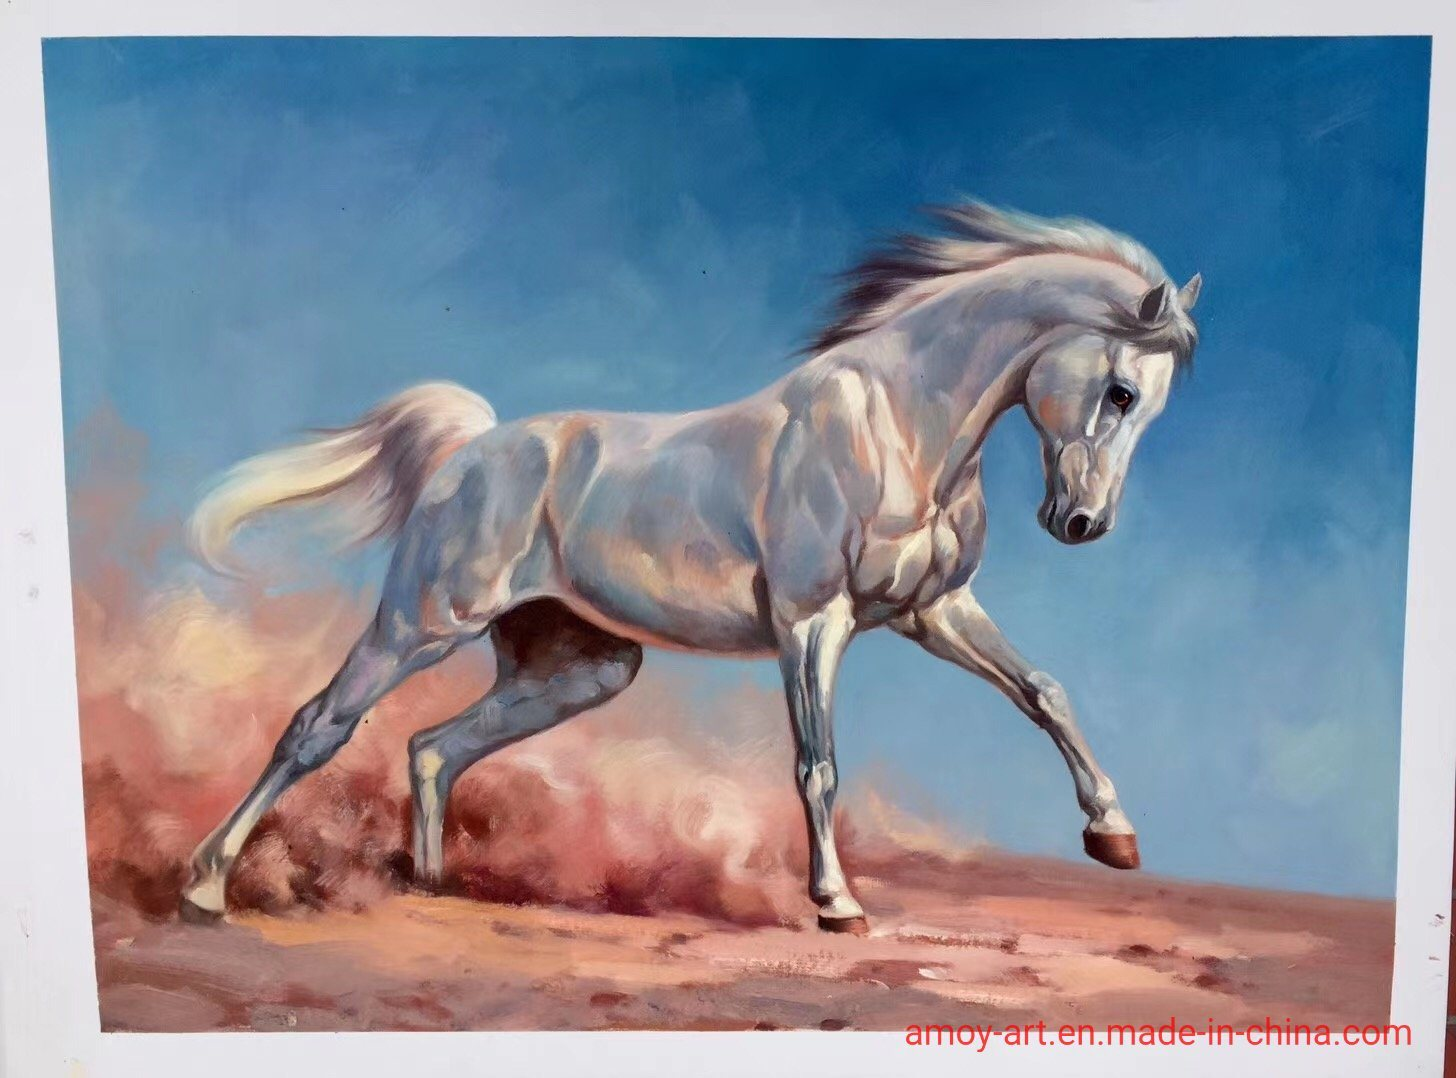 China Reproduction Of Realistic Running Horses Oil Painting On Canvas Photos Pictures Made In China Com